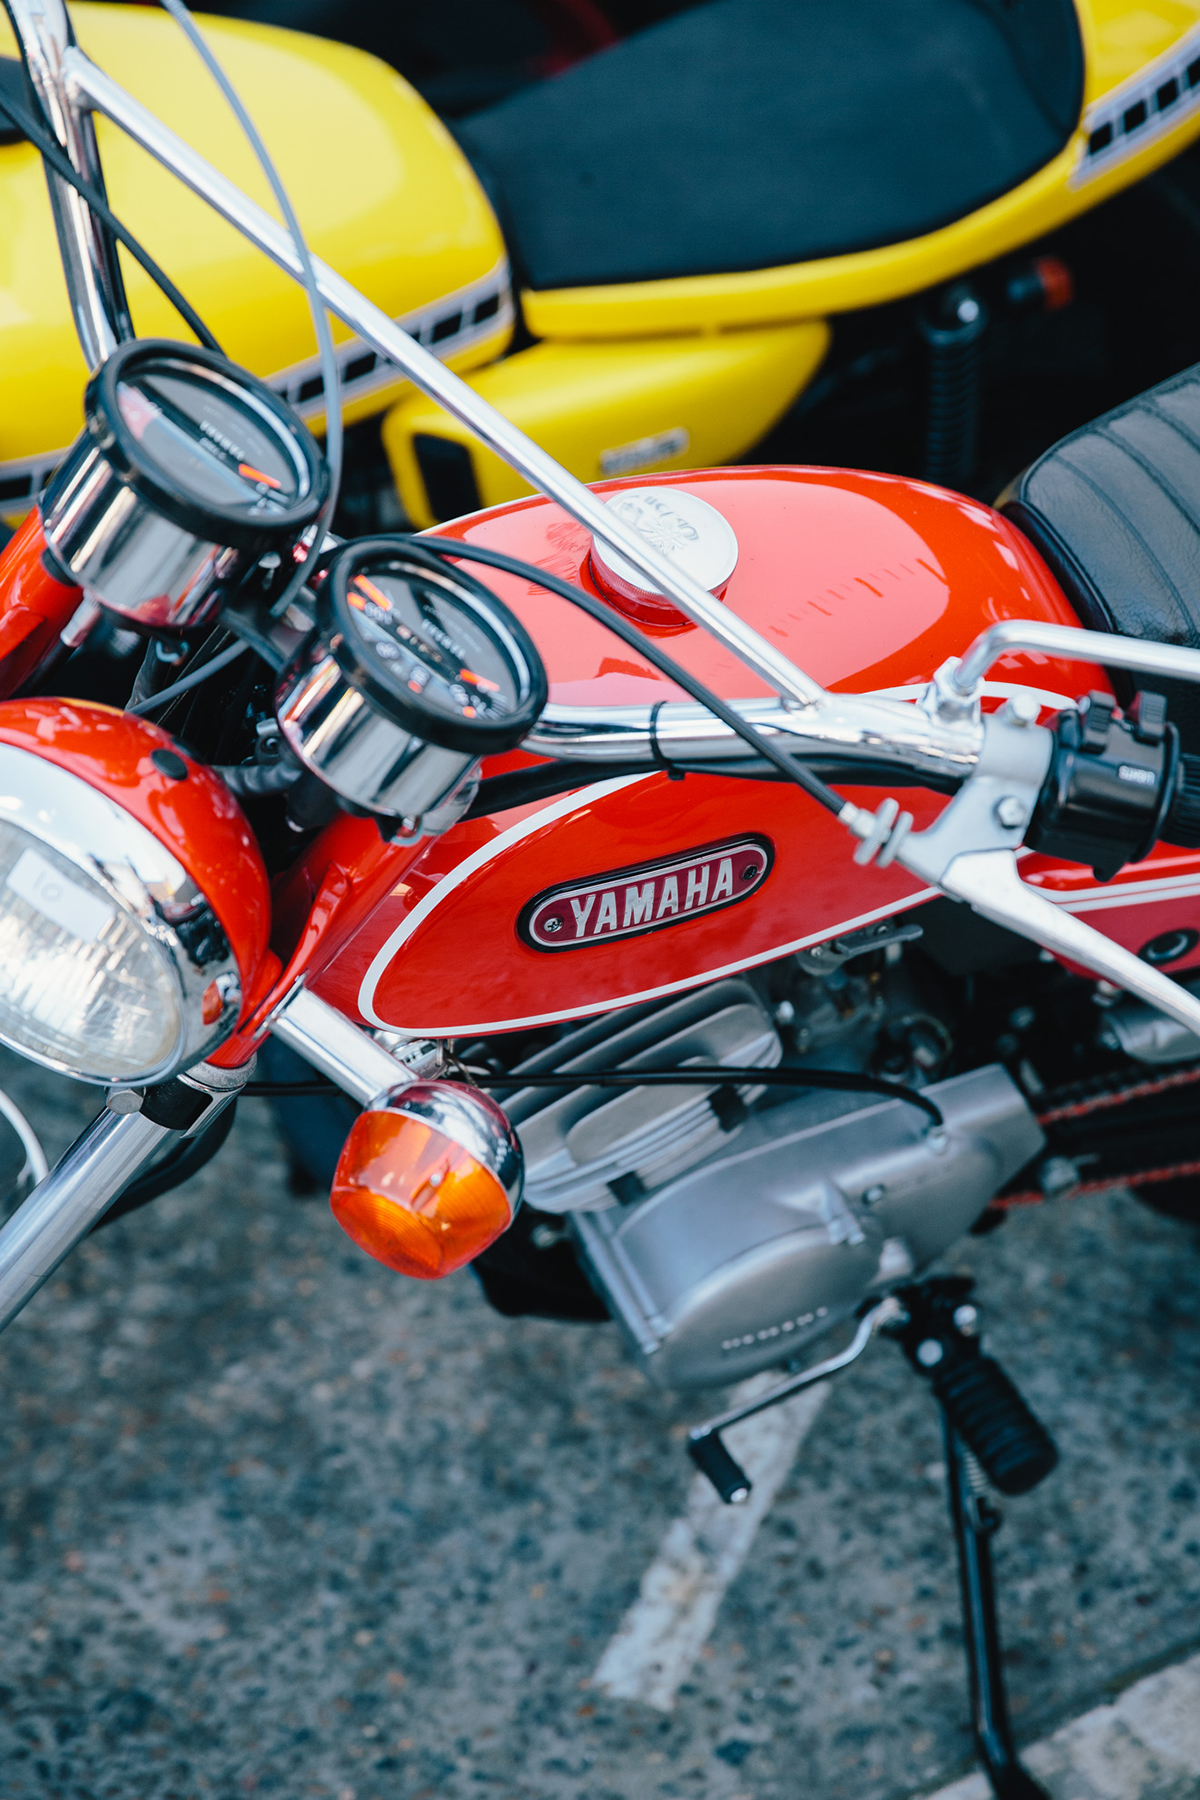 Surfside_Motorcycle_Japanese_8417